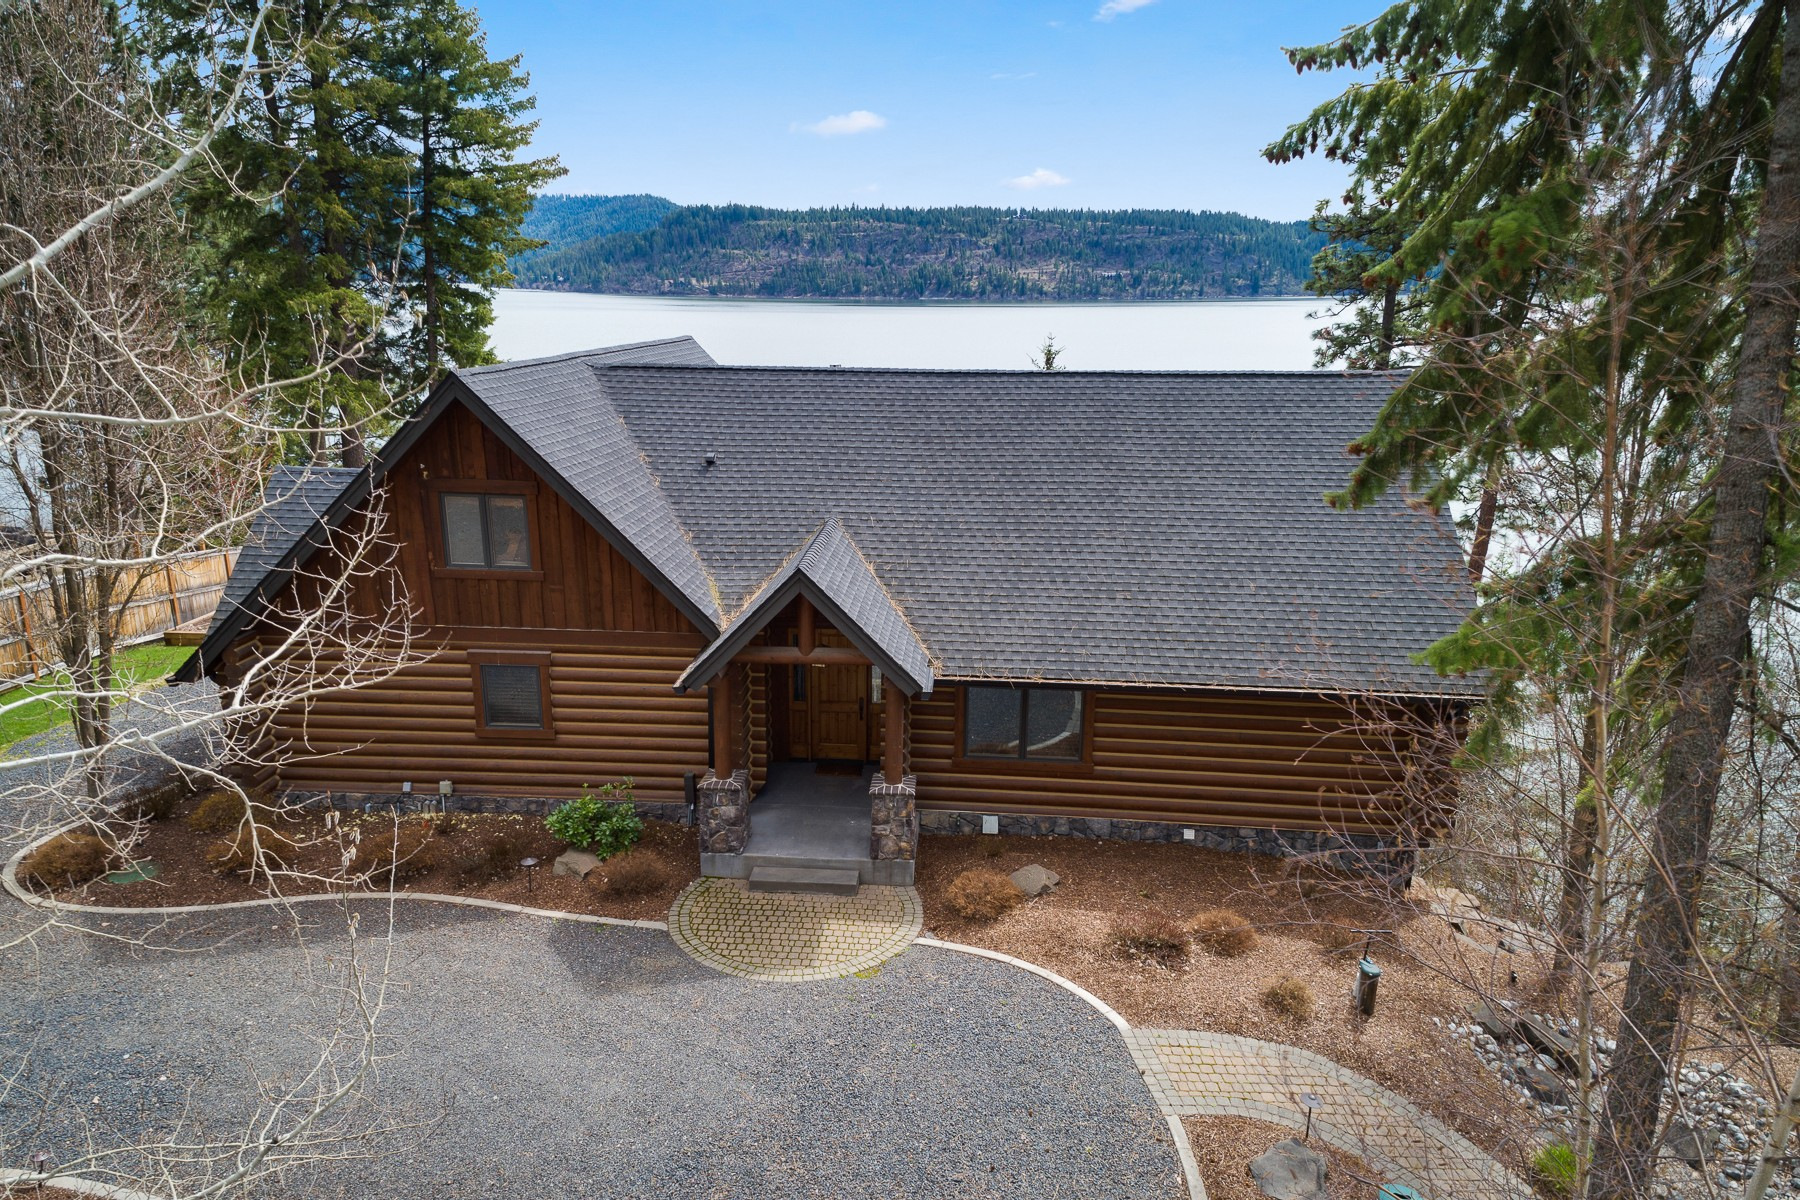 Single Family Homes for Active at Welcome To The Lake! 6868 W Rockford Bay Road Coeur D Alene, Idaho 83814 United States